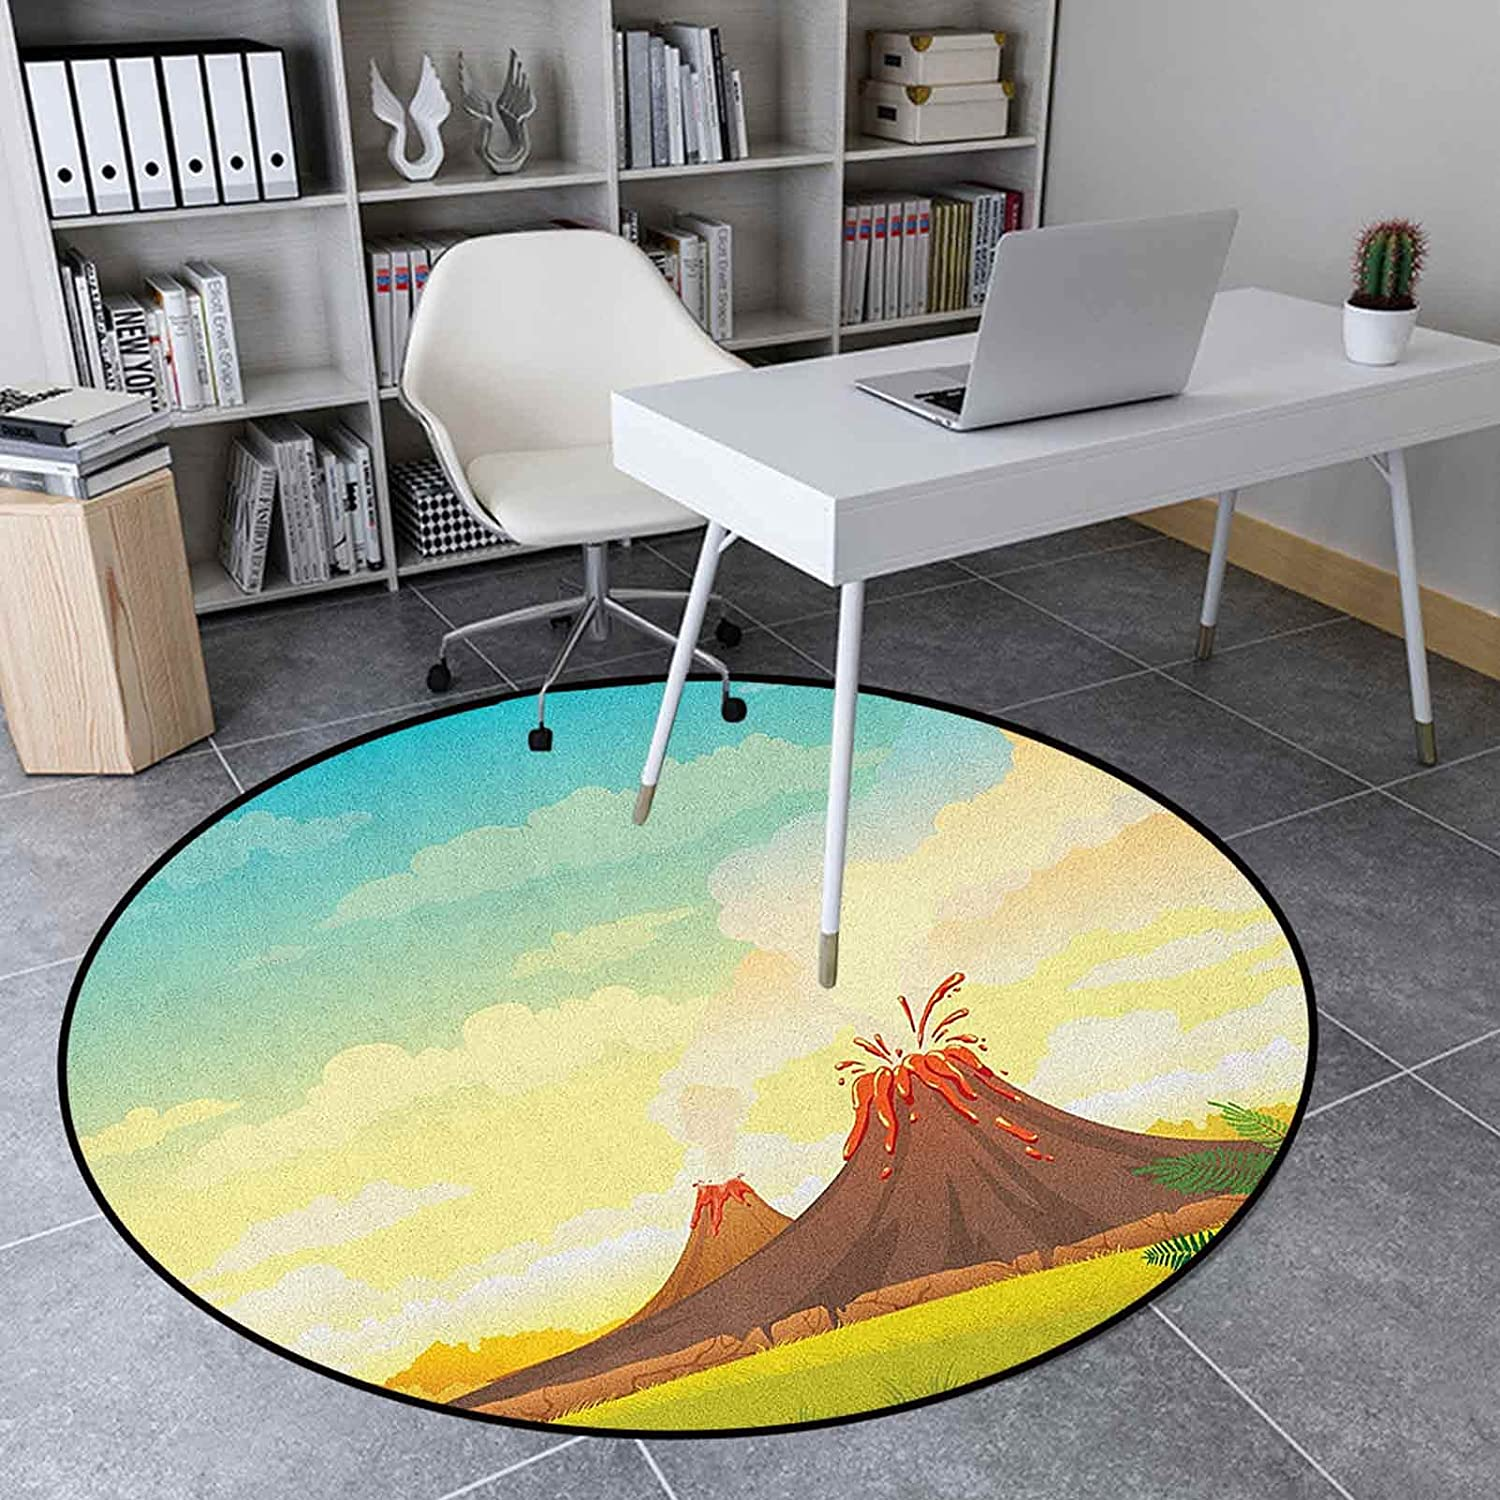 Volcano Round Rug 4.6' Ranking TOP9 Anti-Slip Livin Home Limited time for free shipping Decor for